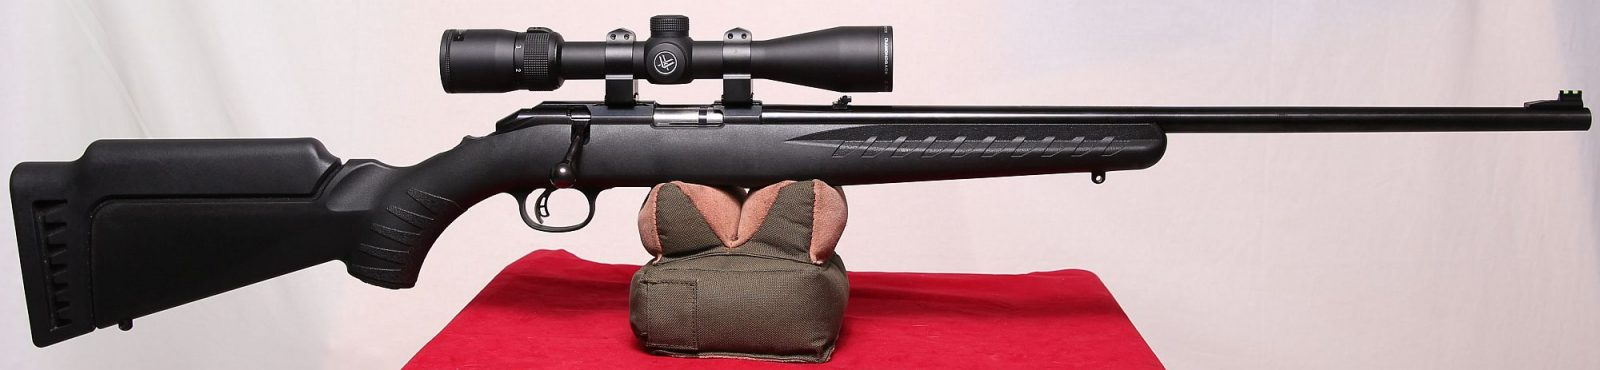 Ruger American Rimfire 22LR Review   The Hunting Gear Guy